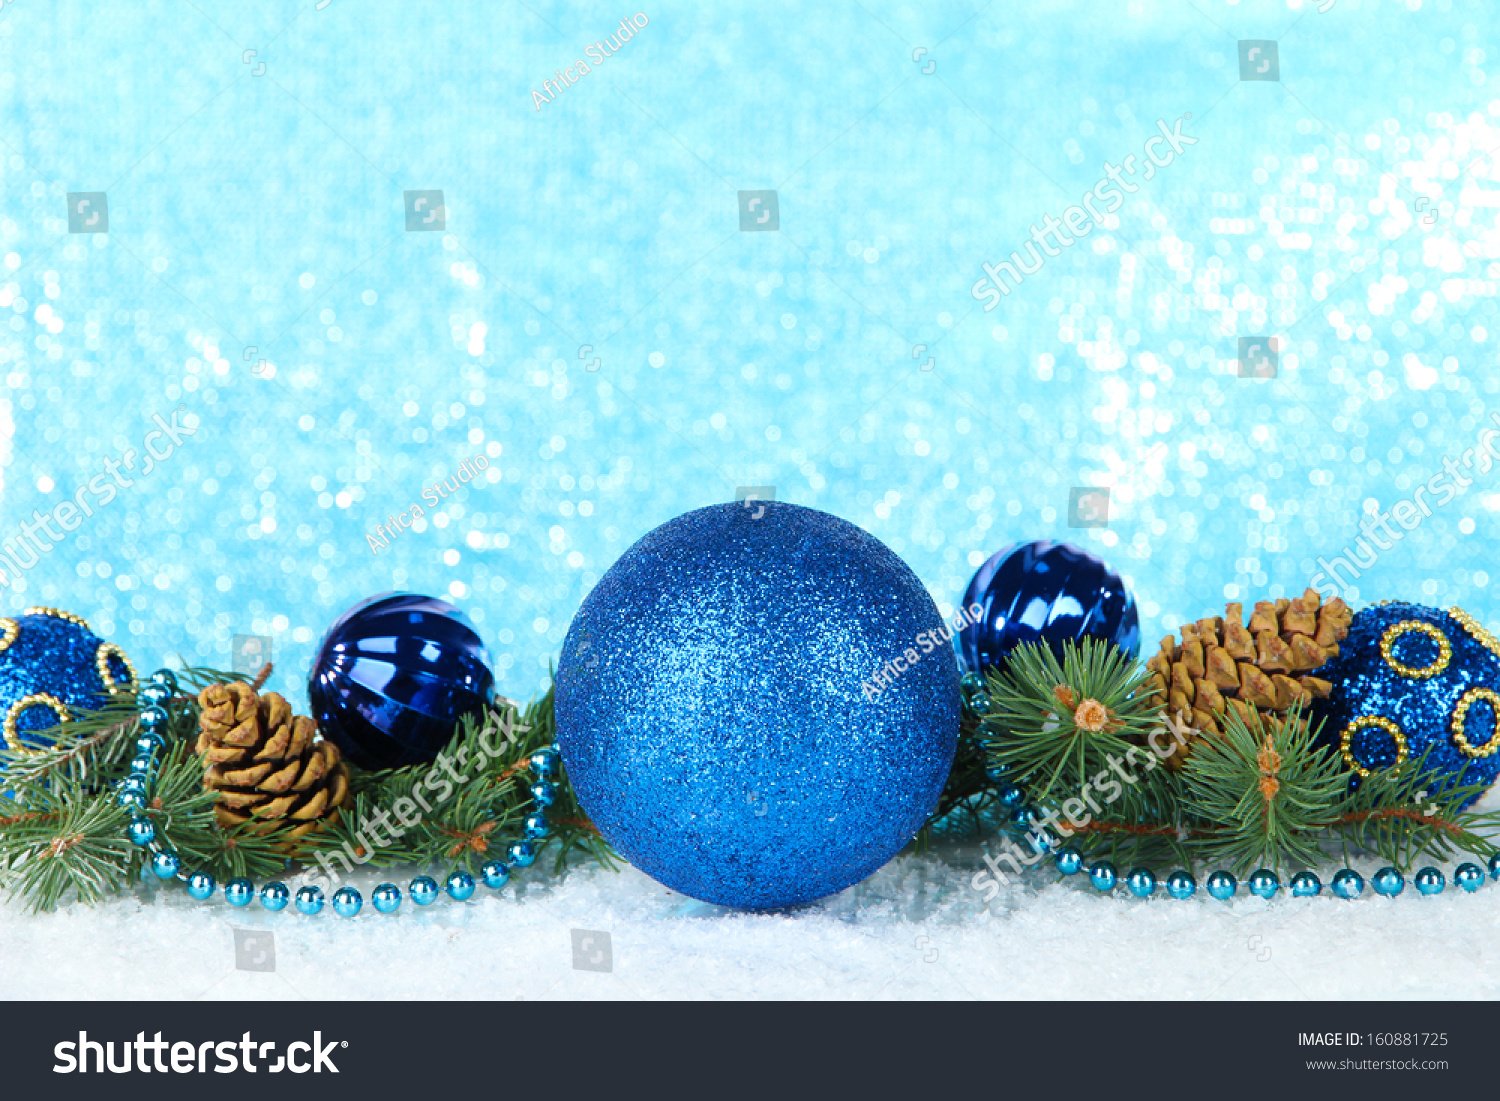 Turquoise and golden christmas ornaments border on white background